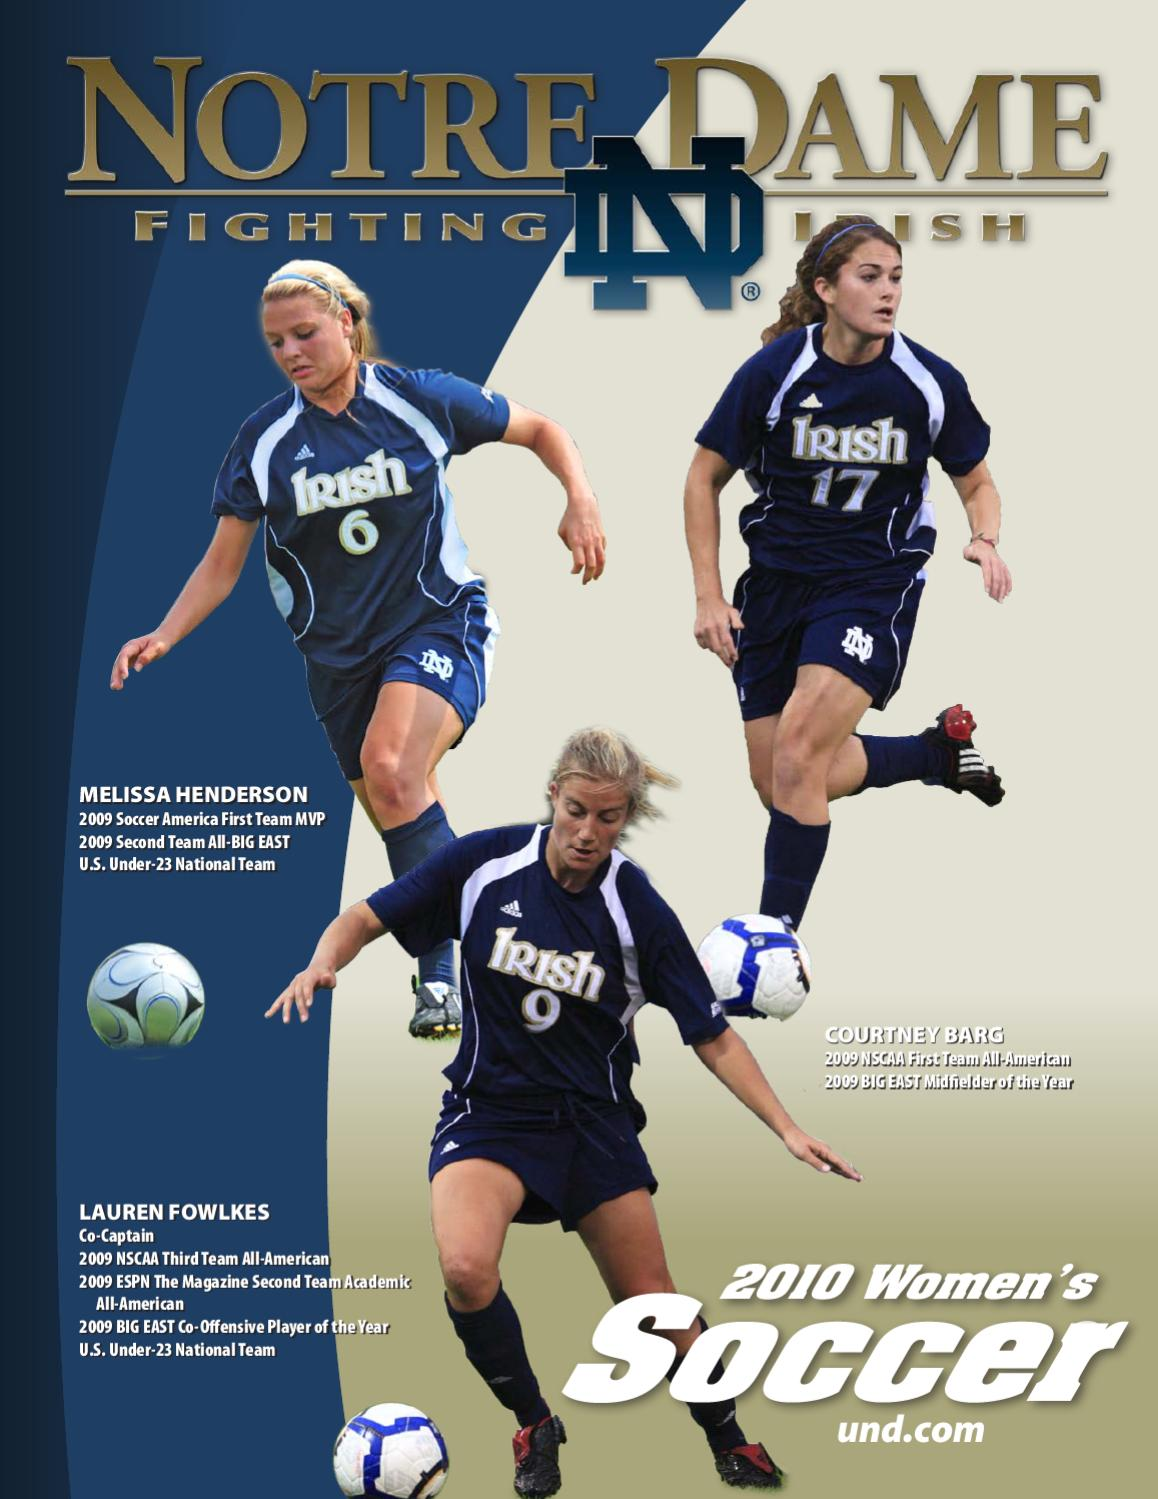 2010 Notre Dame Women's Soccer Media Guide by Chris Masters